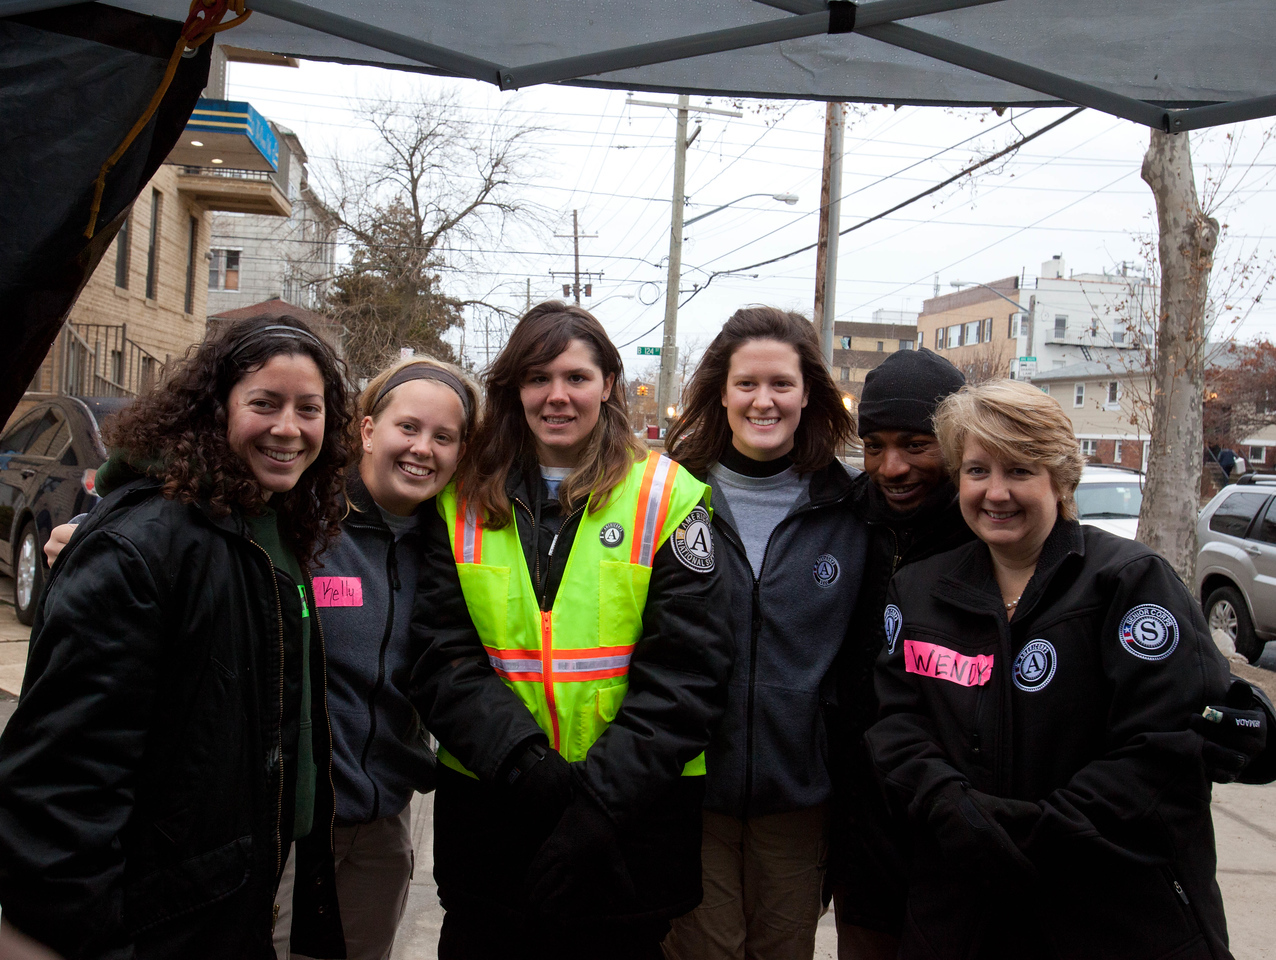 CNCS CEO Wendy Spencer with AmeriCorps members working at the volunteer reception center - Forward Operating Base (FOB Hope), Far Rockaway, NY. Corporation for National and Community Service Photo.